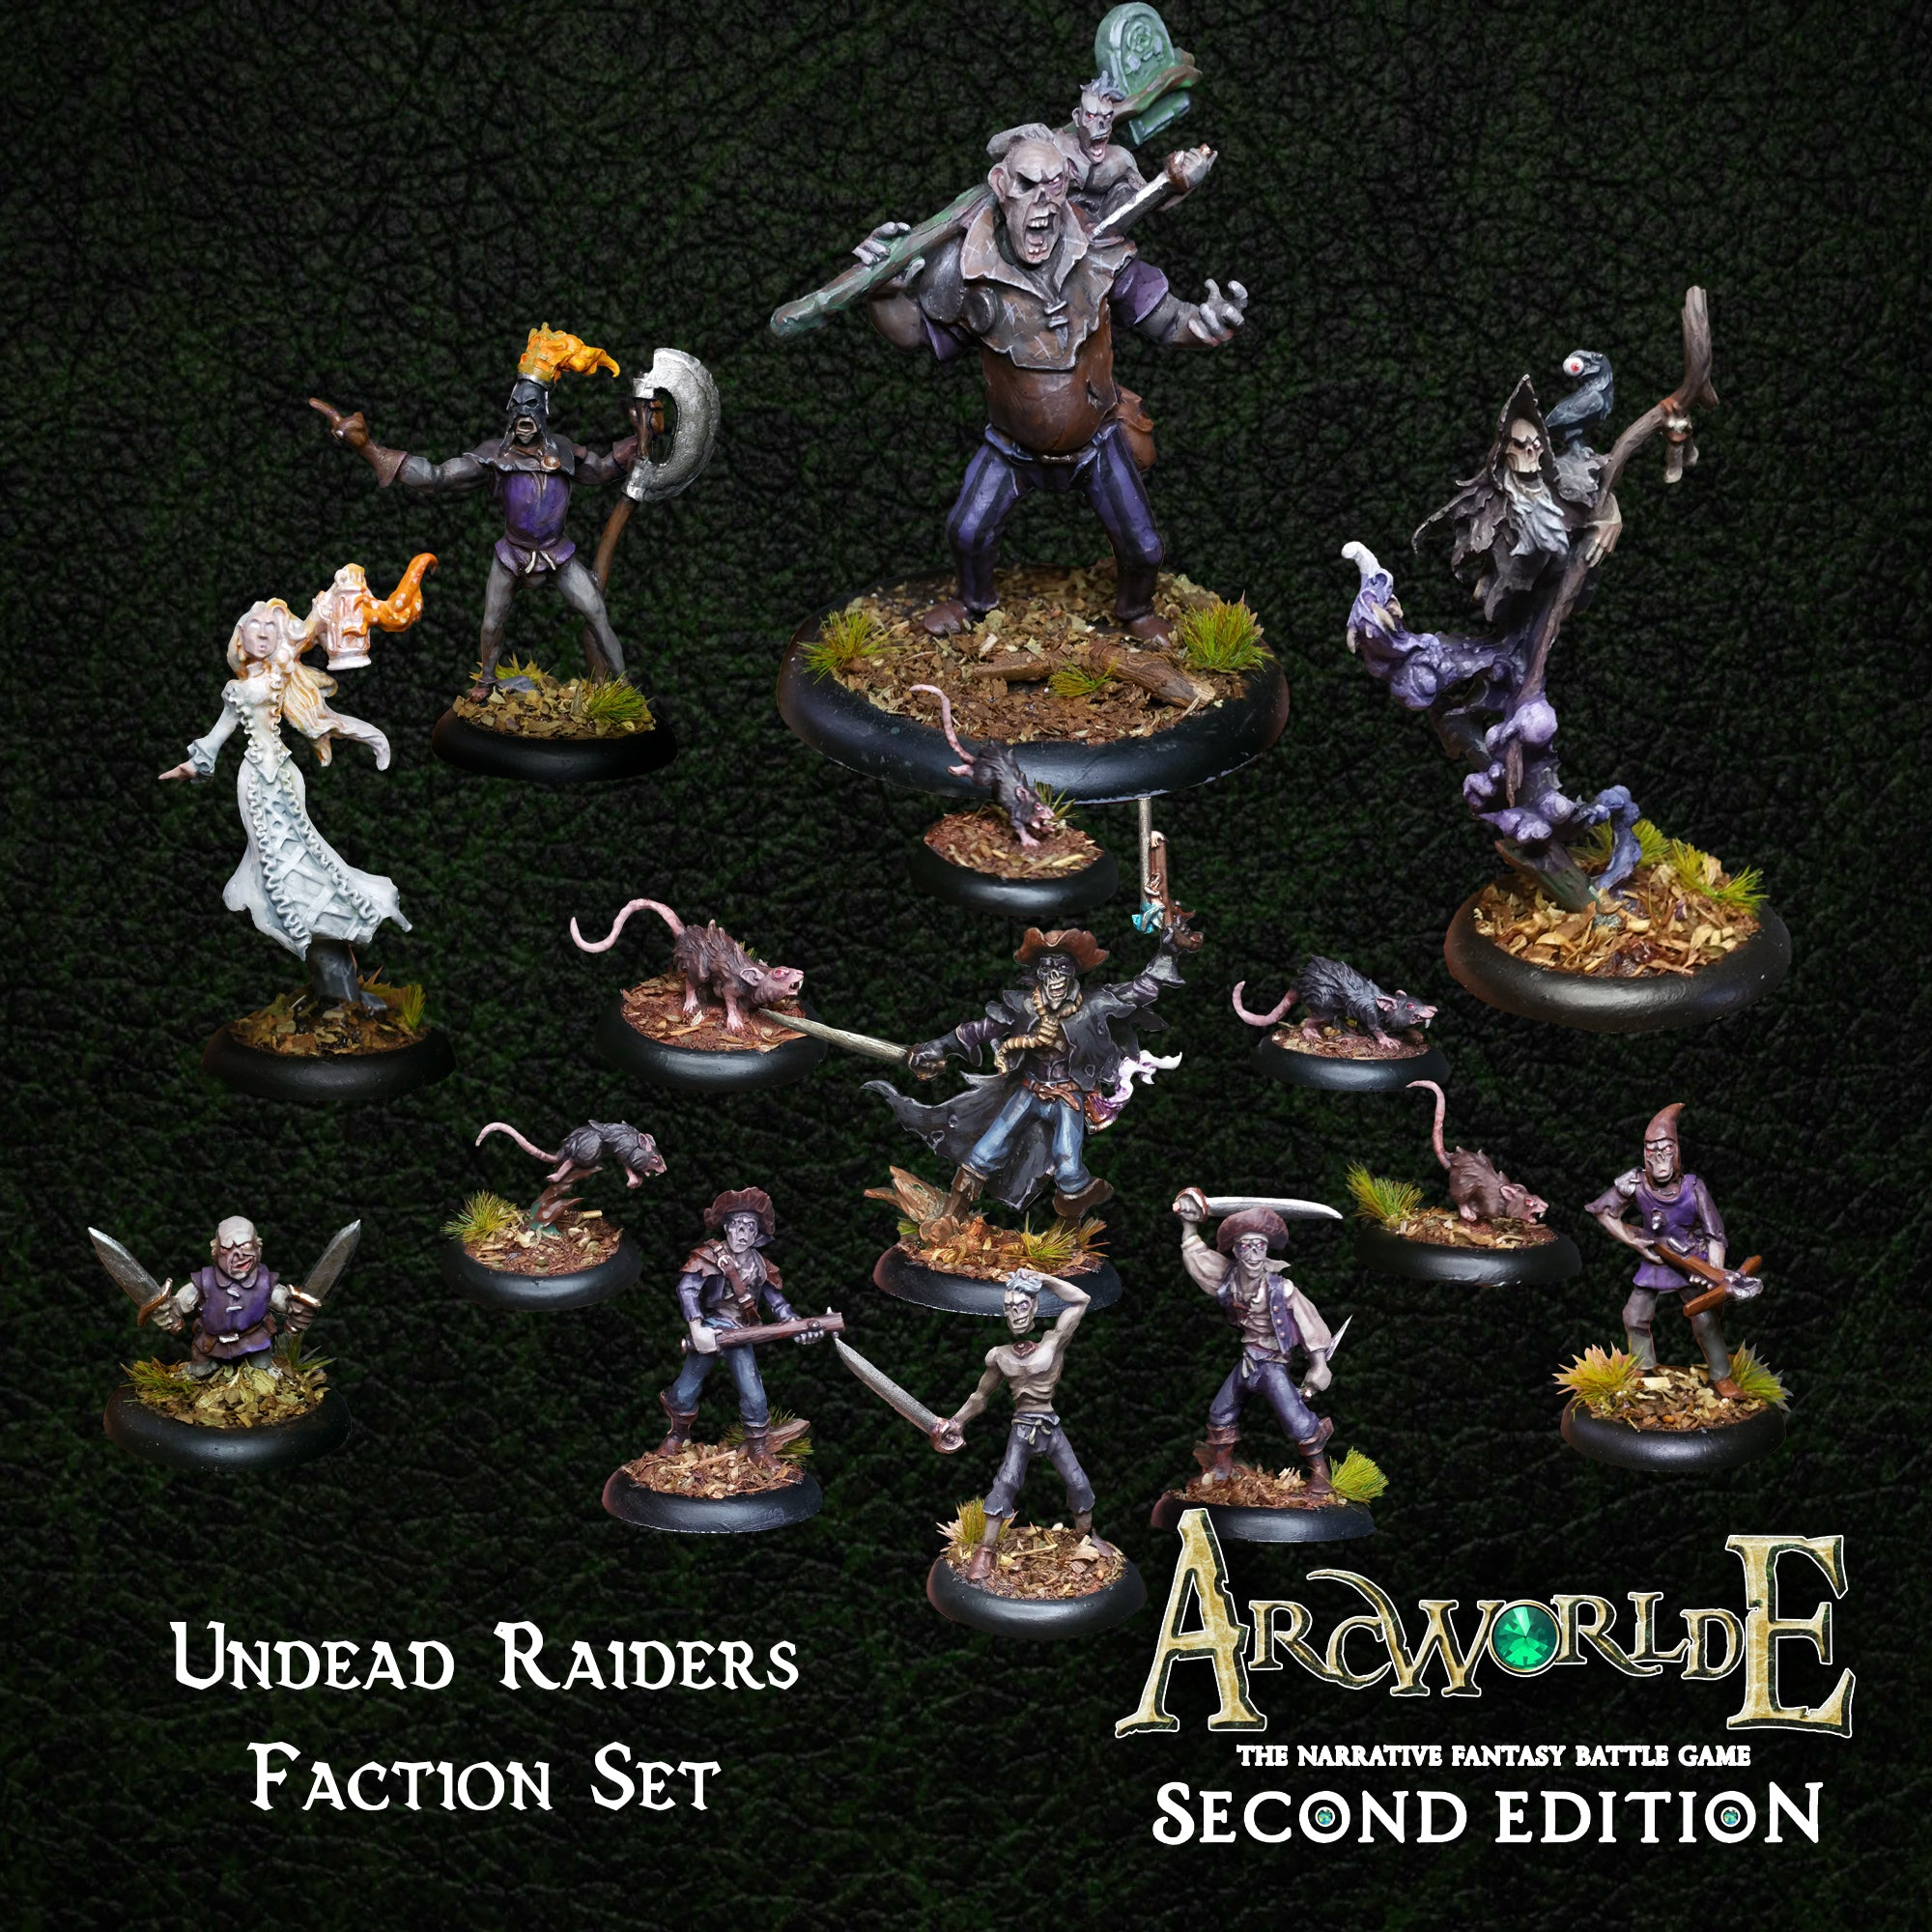 Undead-Faction-Set.jpg